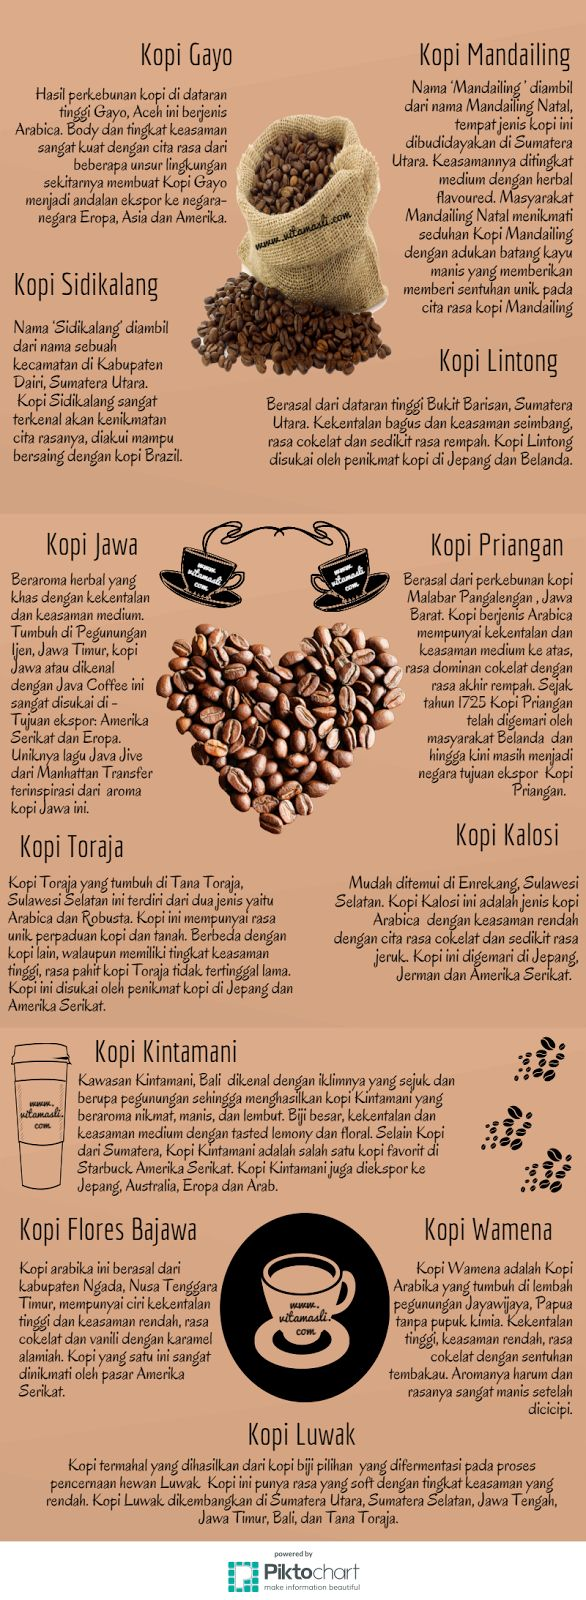 Hari Kopi Sedunia dan Kopi Indonesia ~ Vita Masli, An Excited Blogger